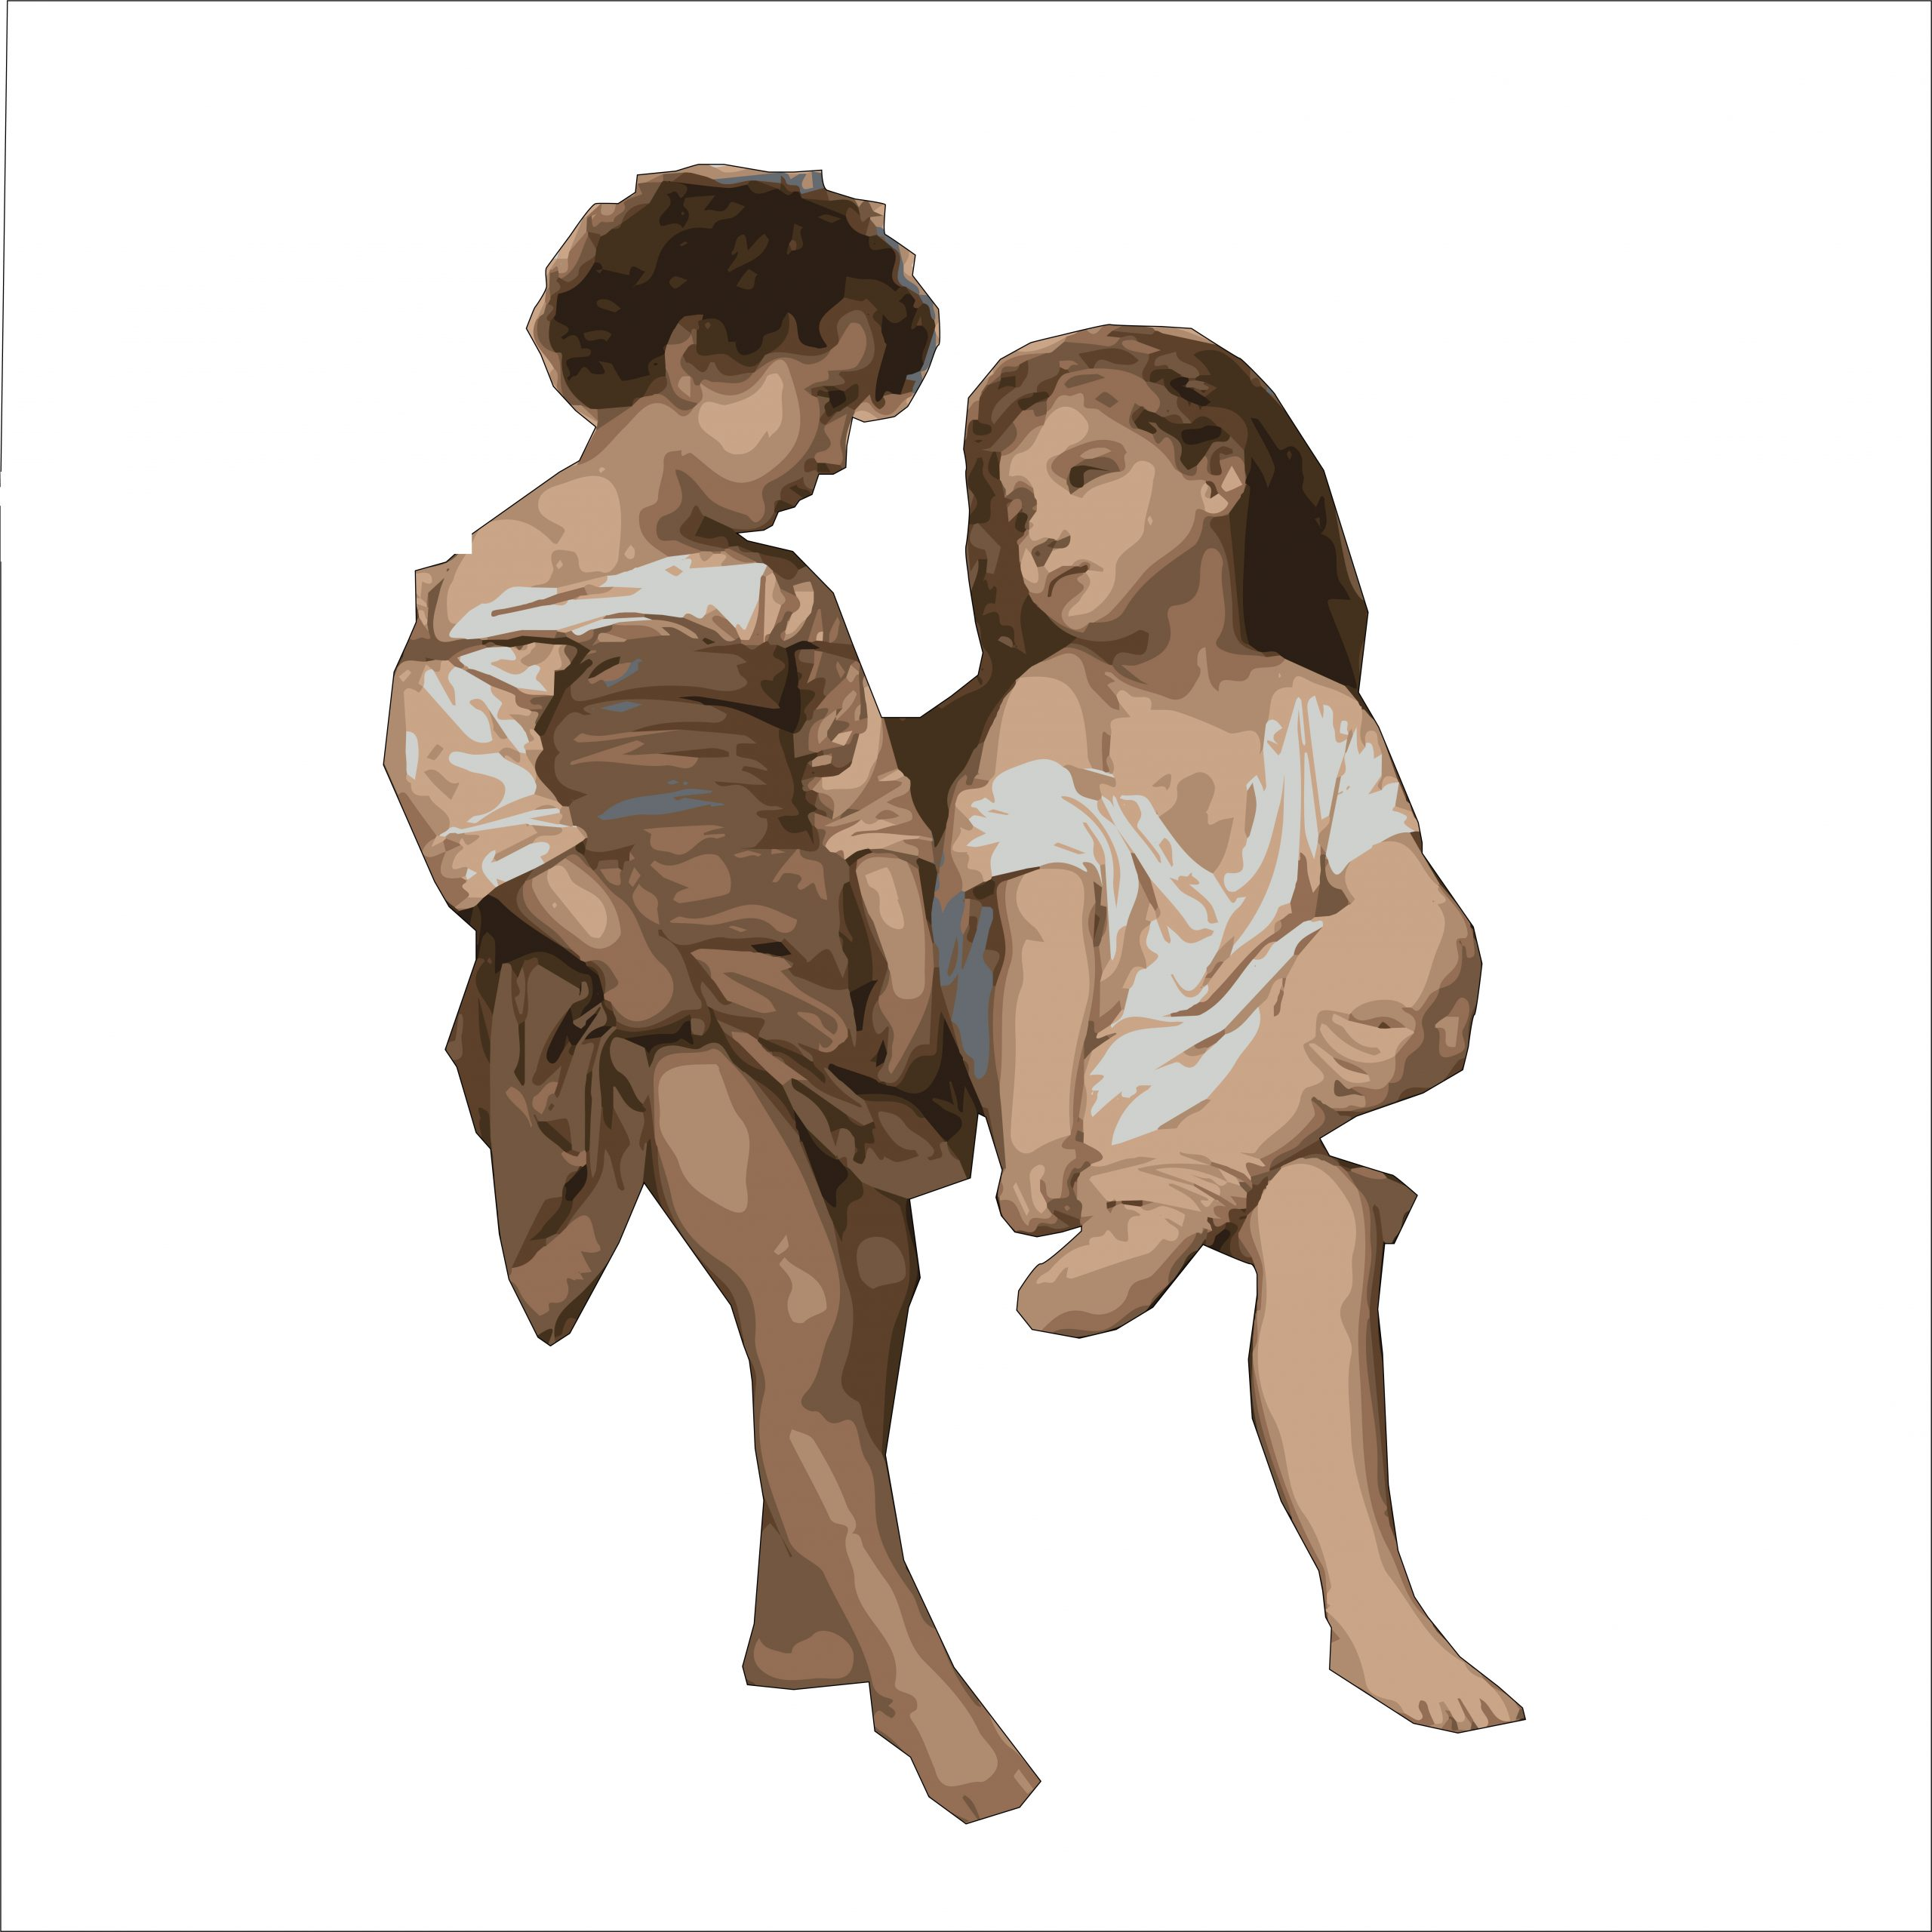 Painting of two kids